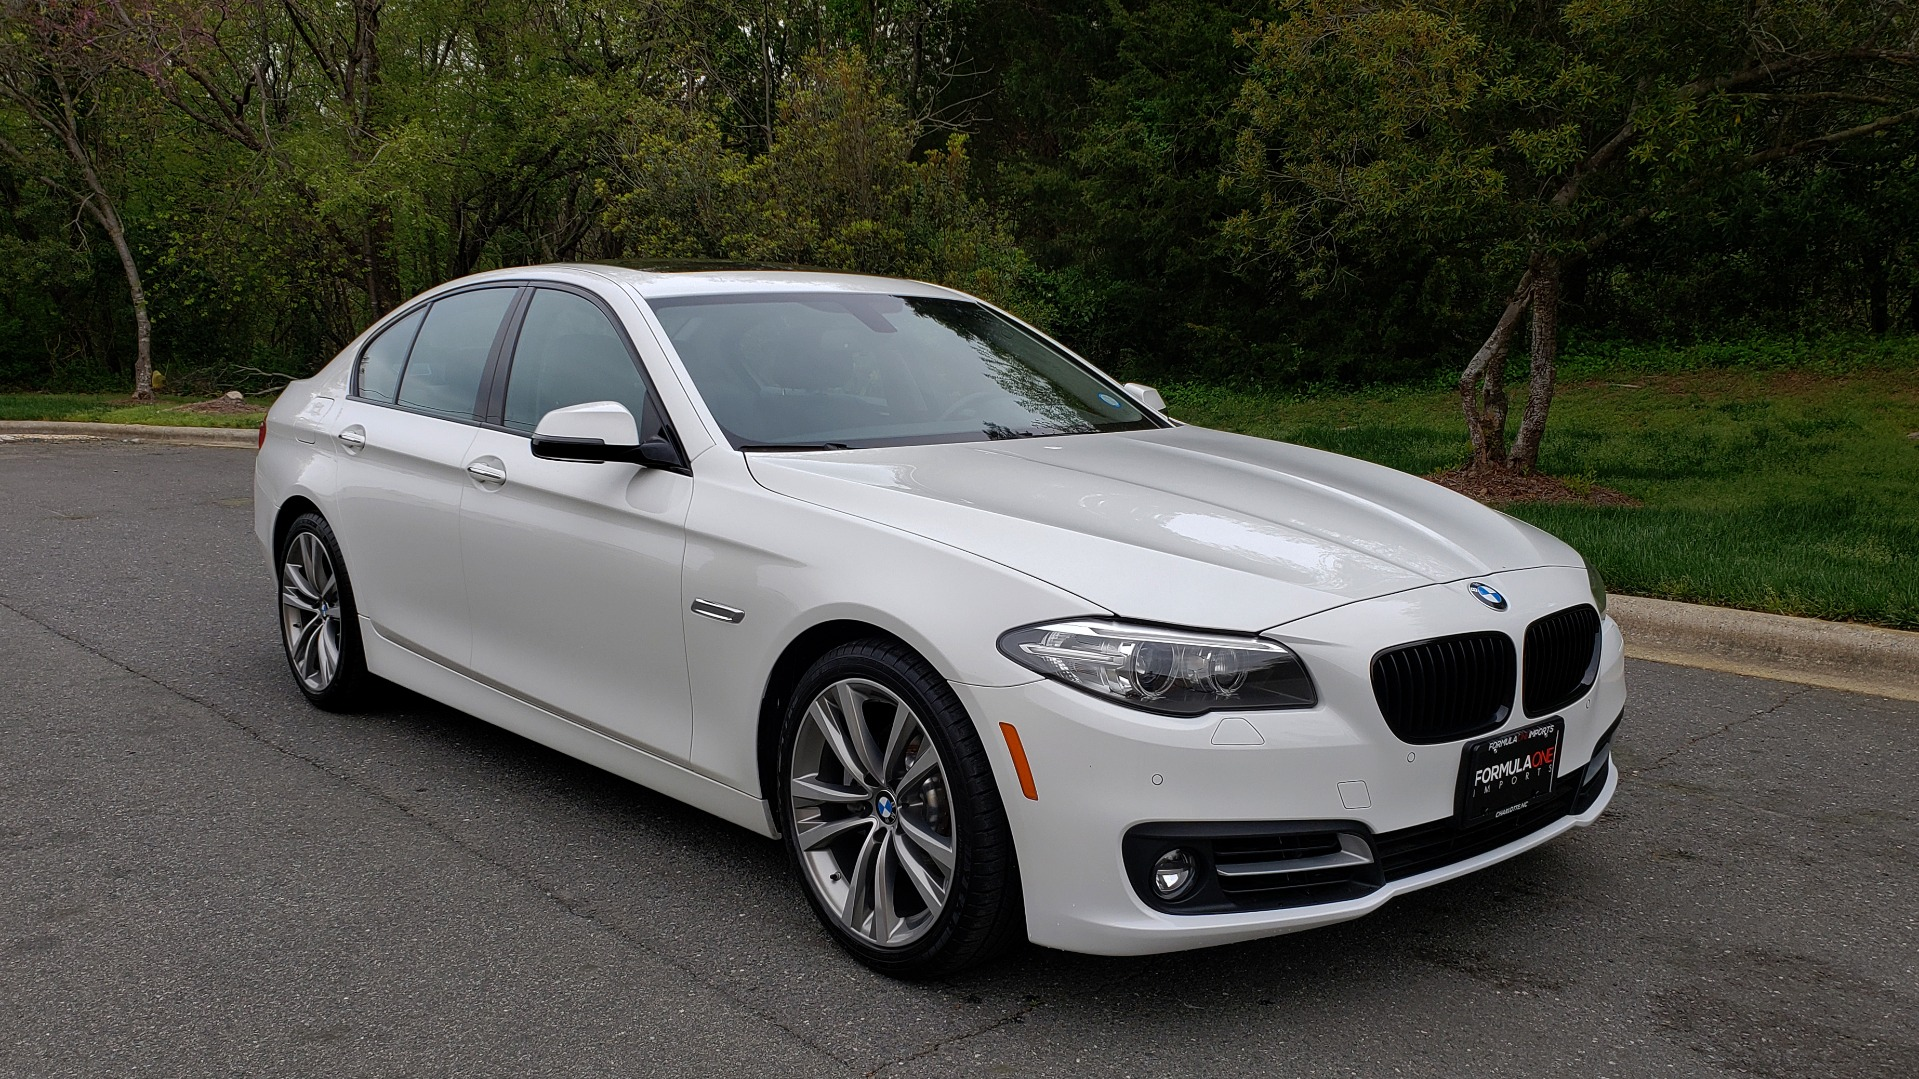 Used 2016 BMW 5 SERIES 528I XDRIVE SPECIAL EDITION / NAV / SUNROOF /HTD STS / REARVIEW for sale Sold at Formula Imports in Charlotte NC 28227 4